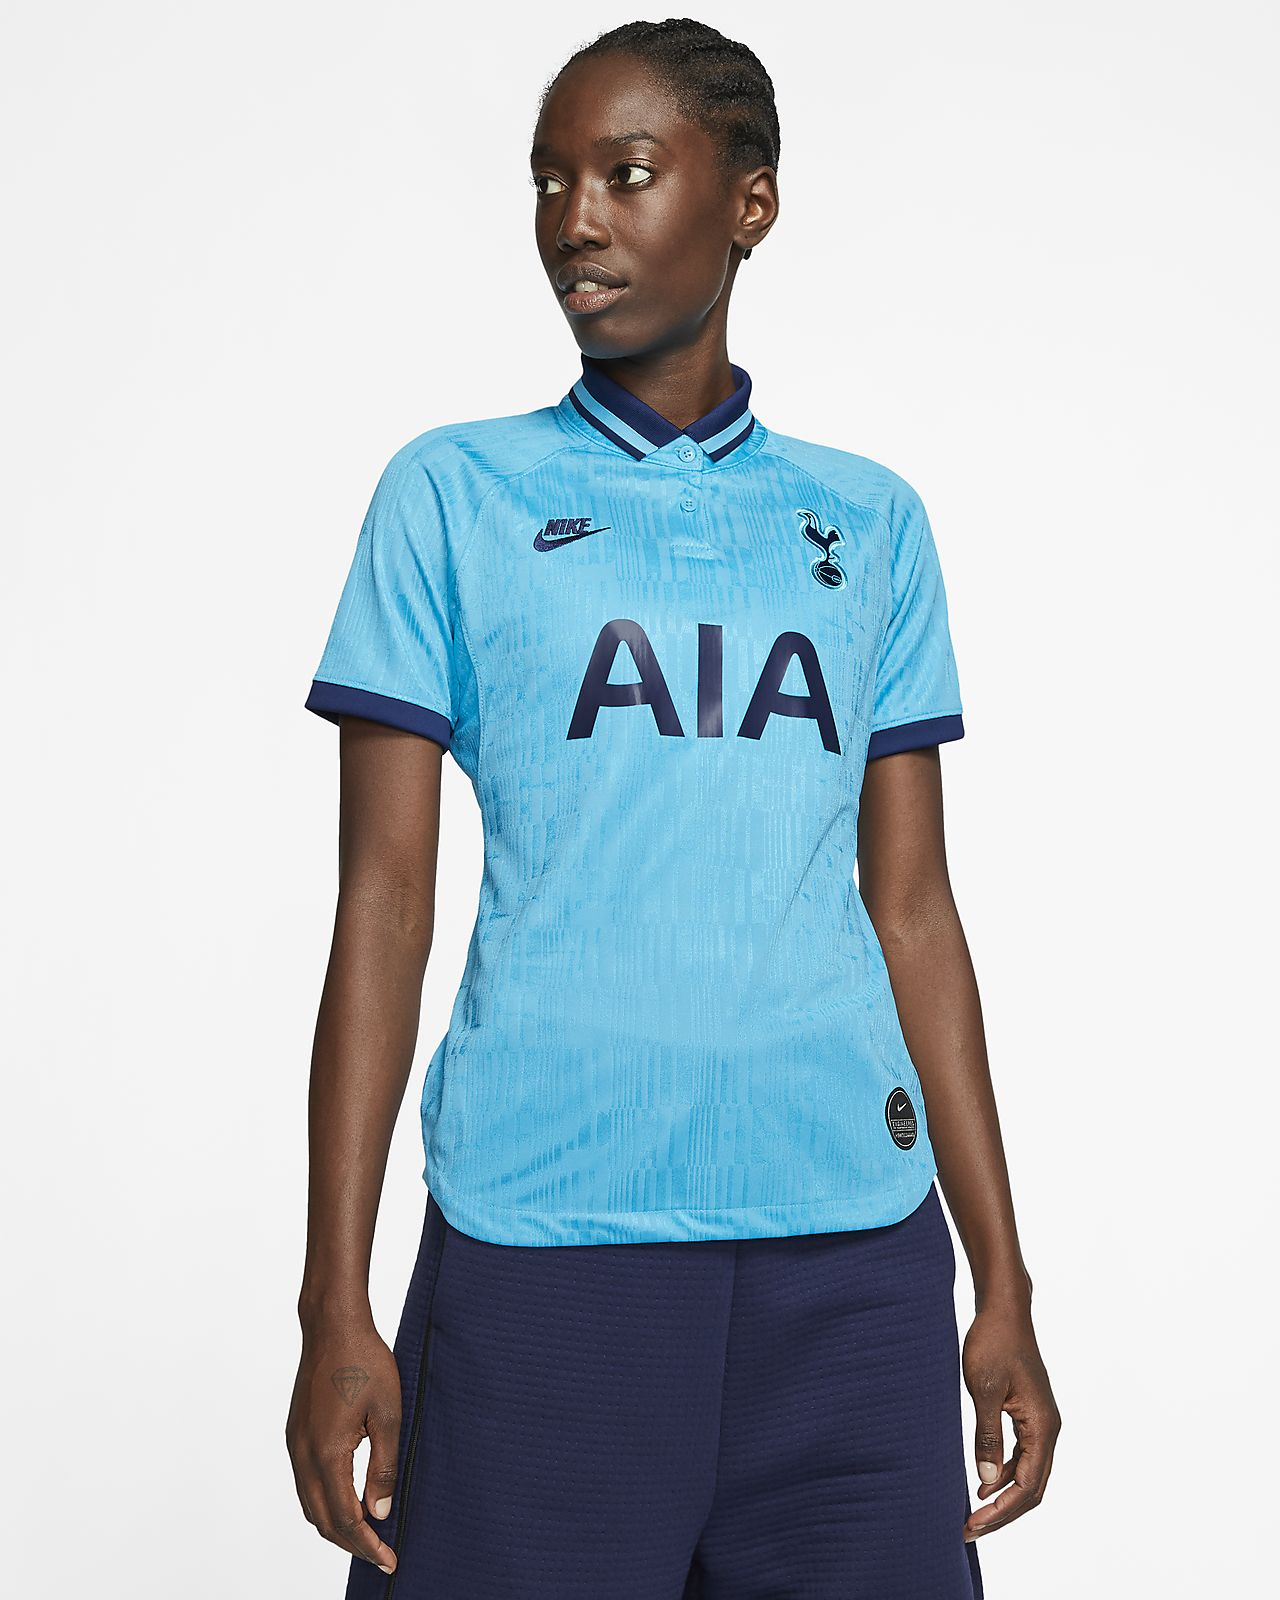 finest selection 0abce 5112d Tottenham Hotspur 2019/20 Stadium Third Women's Football Shirt